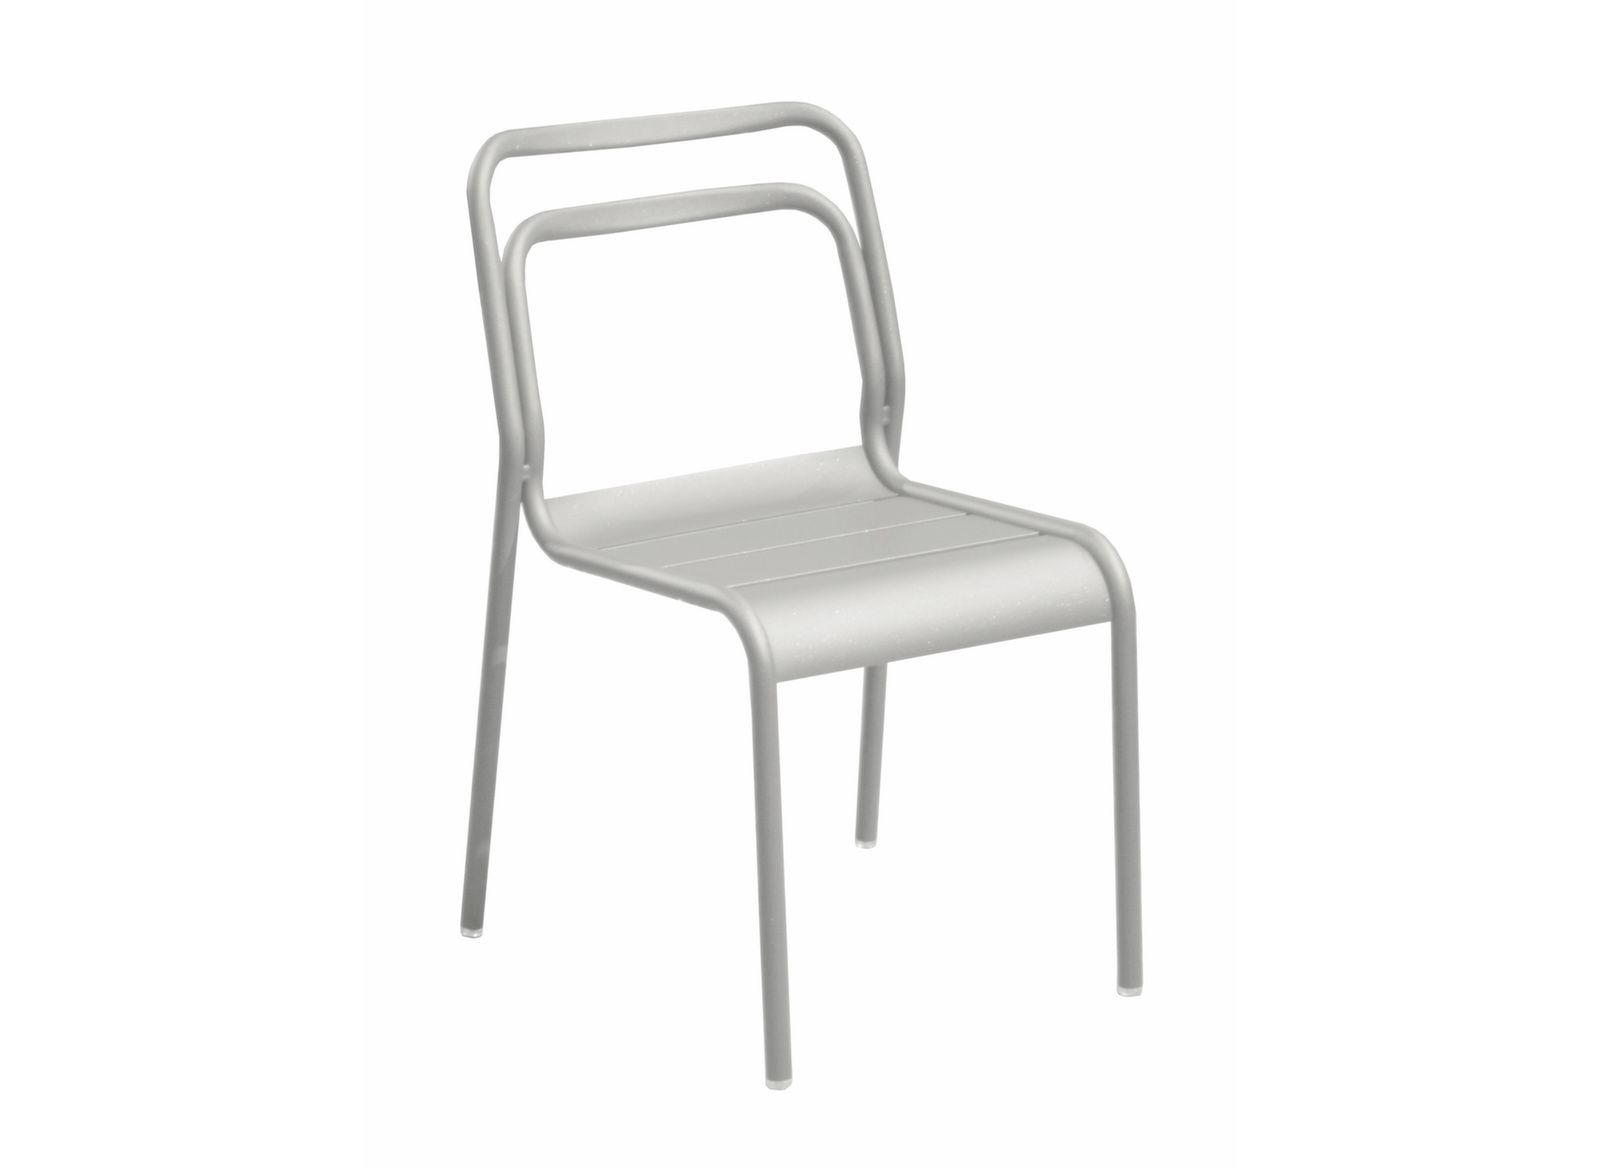 Chaise empilable Eos